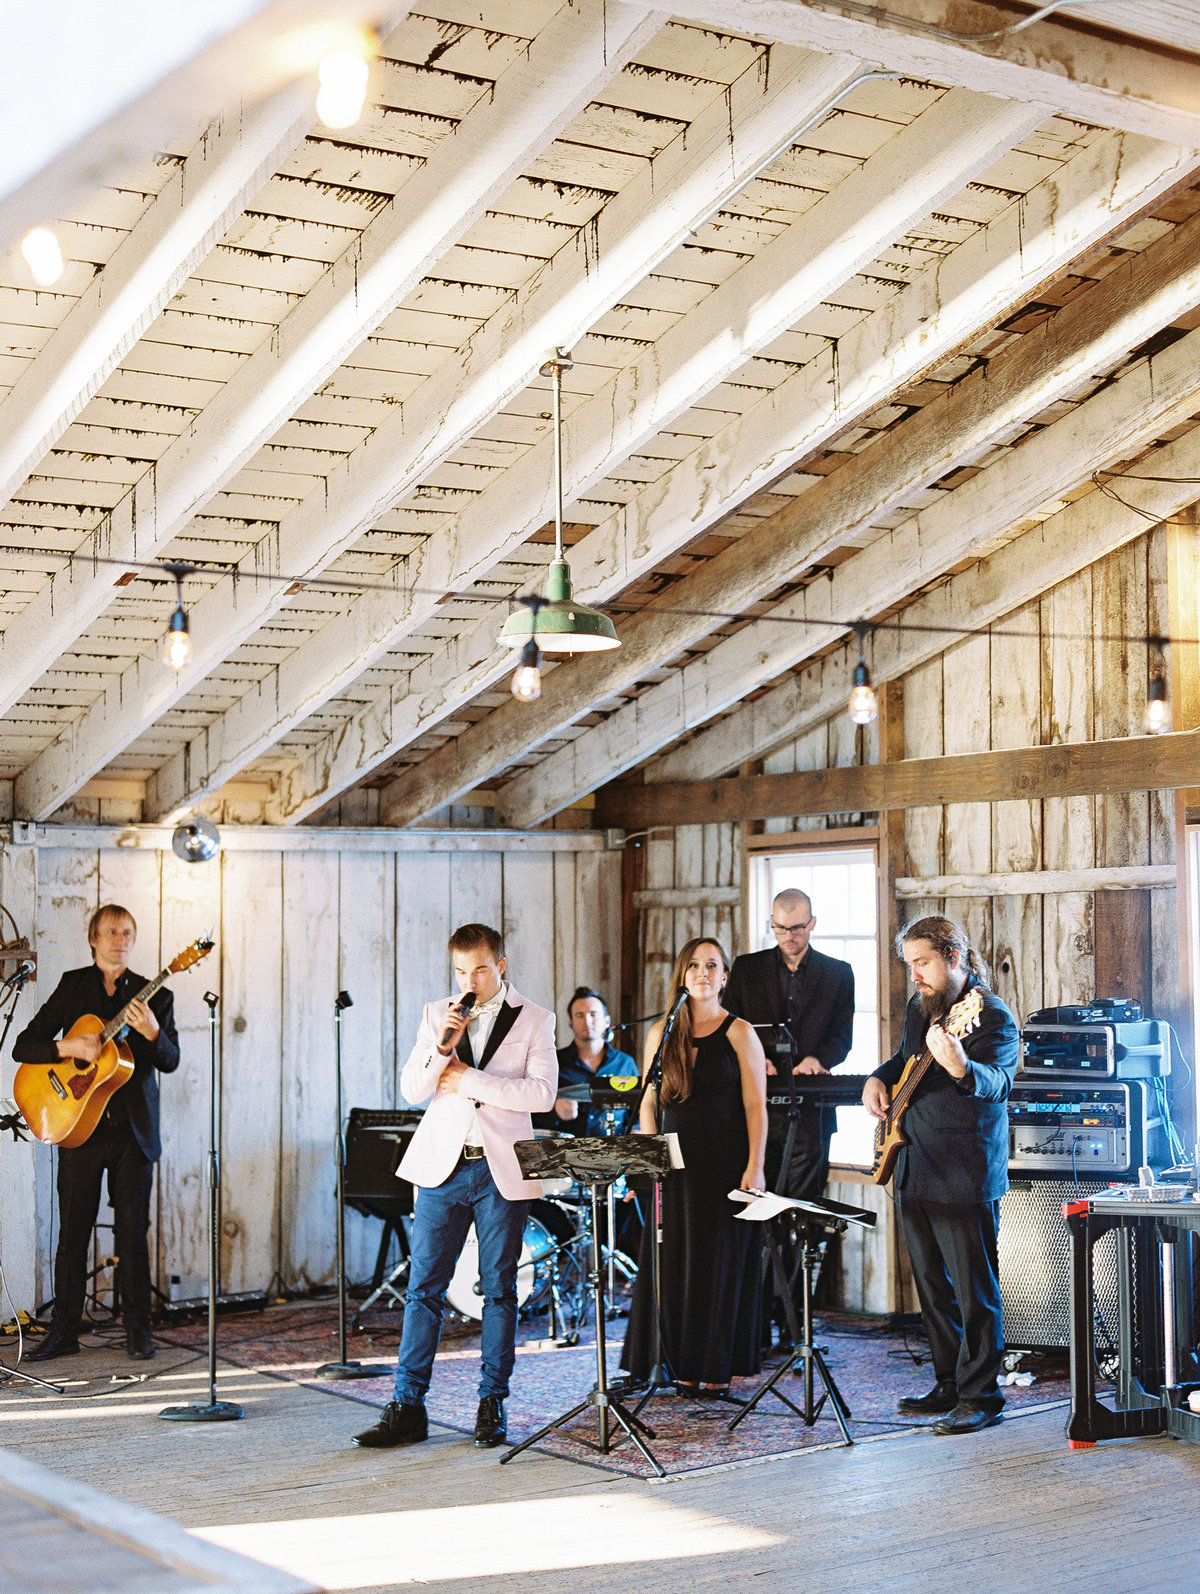 Band in a barn wedding reception